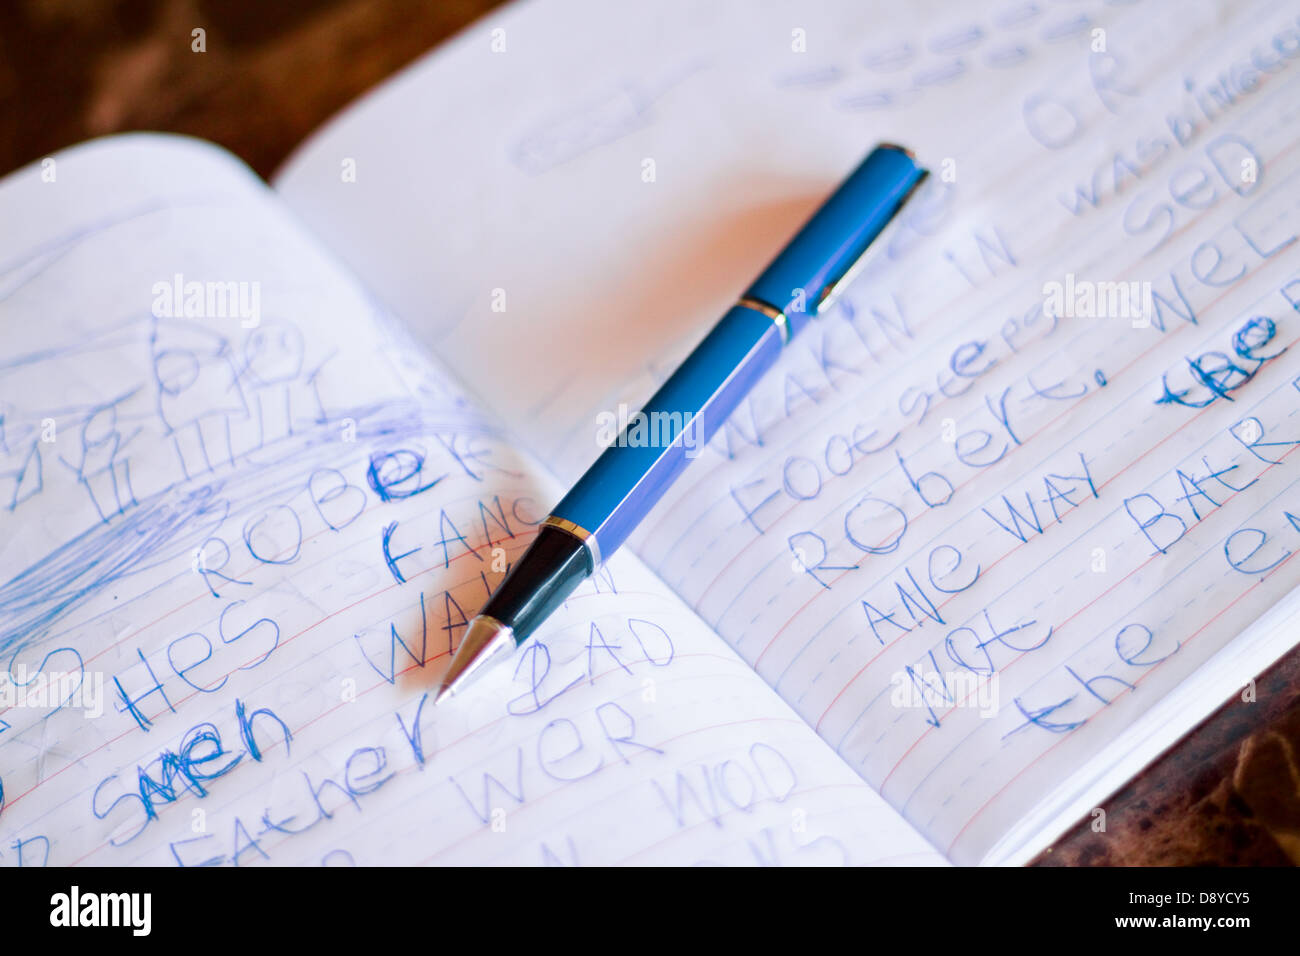 A child's handwriting in a journal learning to write Stock Photo